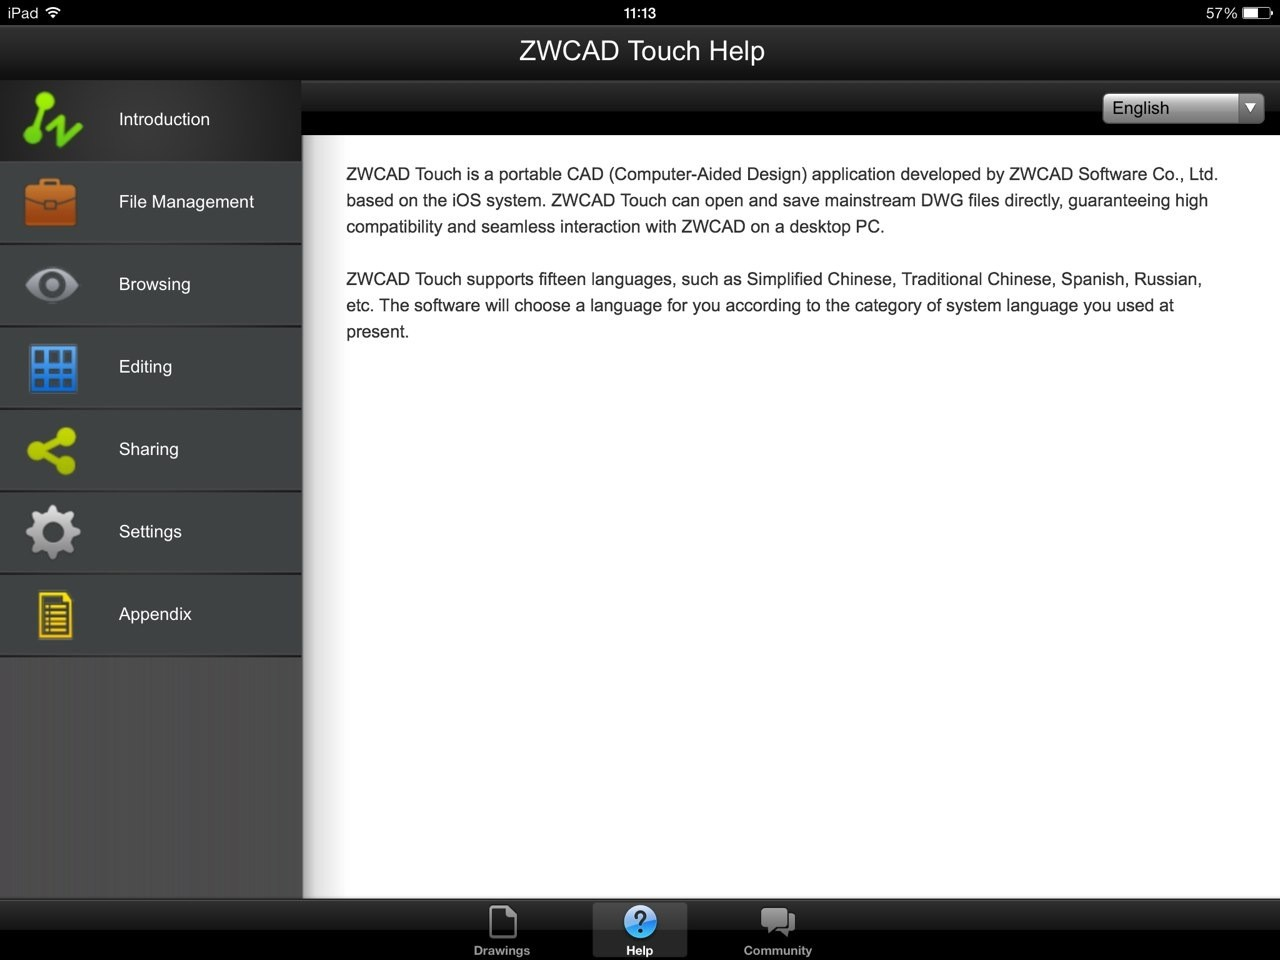 ZWCAD Touch Update Brings Greater Compatibility and Usability